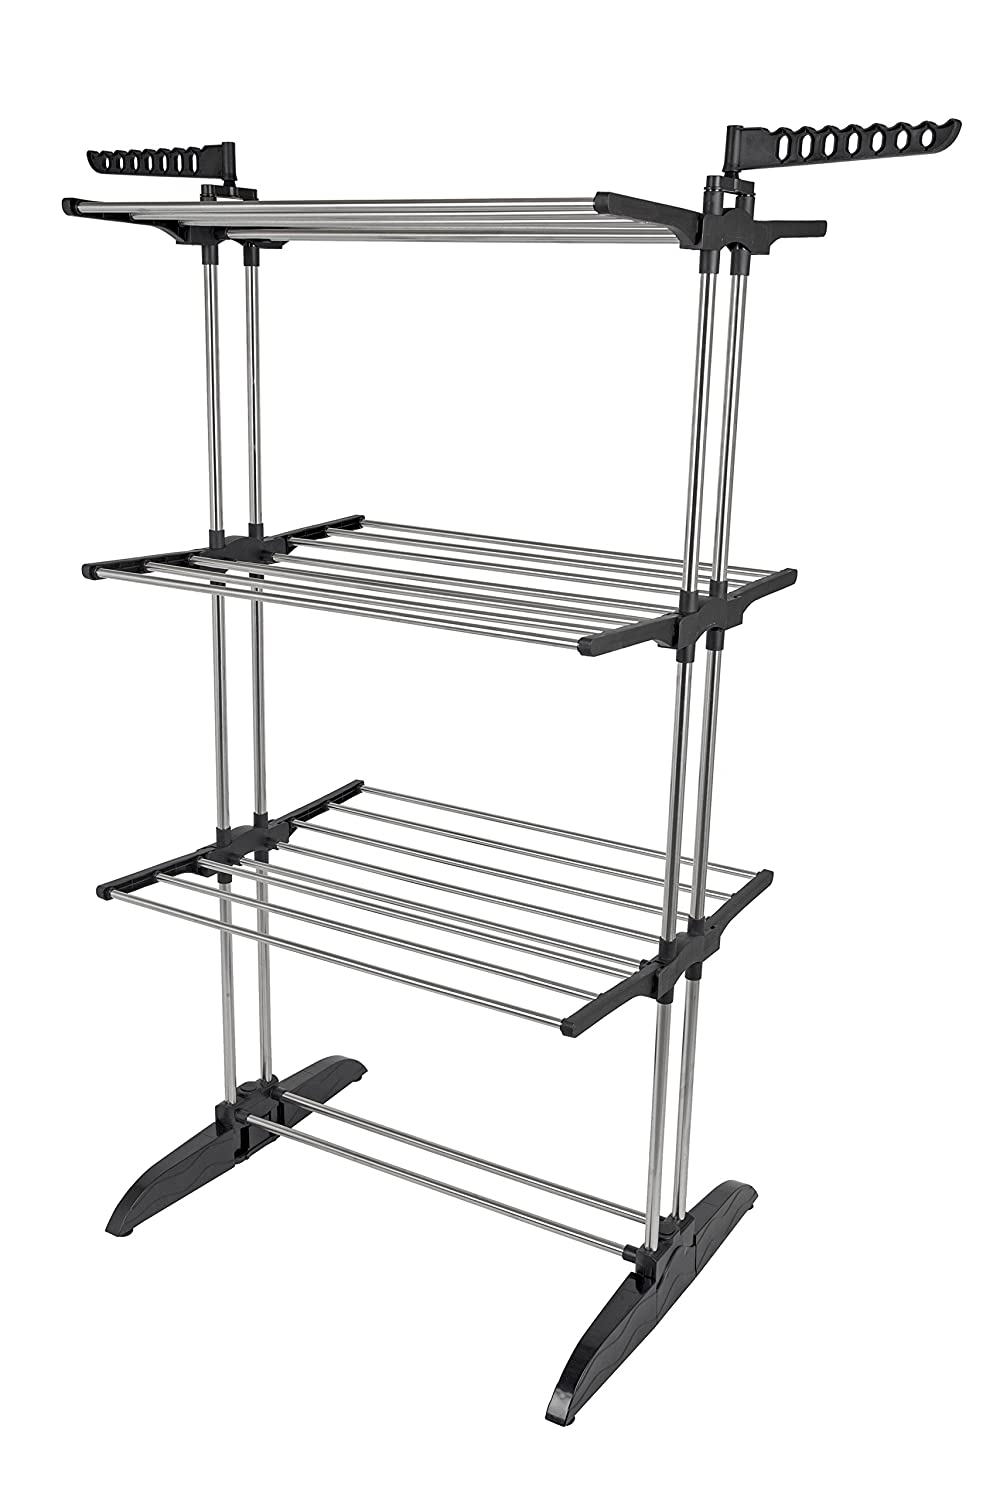 Greenway GFR6000SS Collapsible Vertical Drying Rack GHP Group ULC